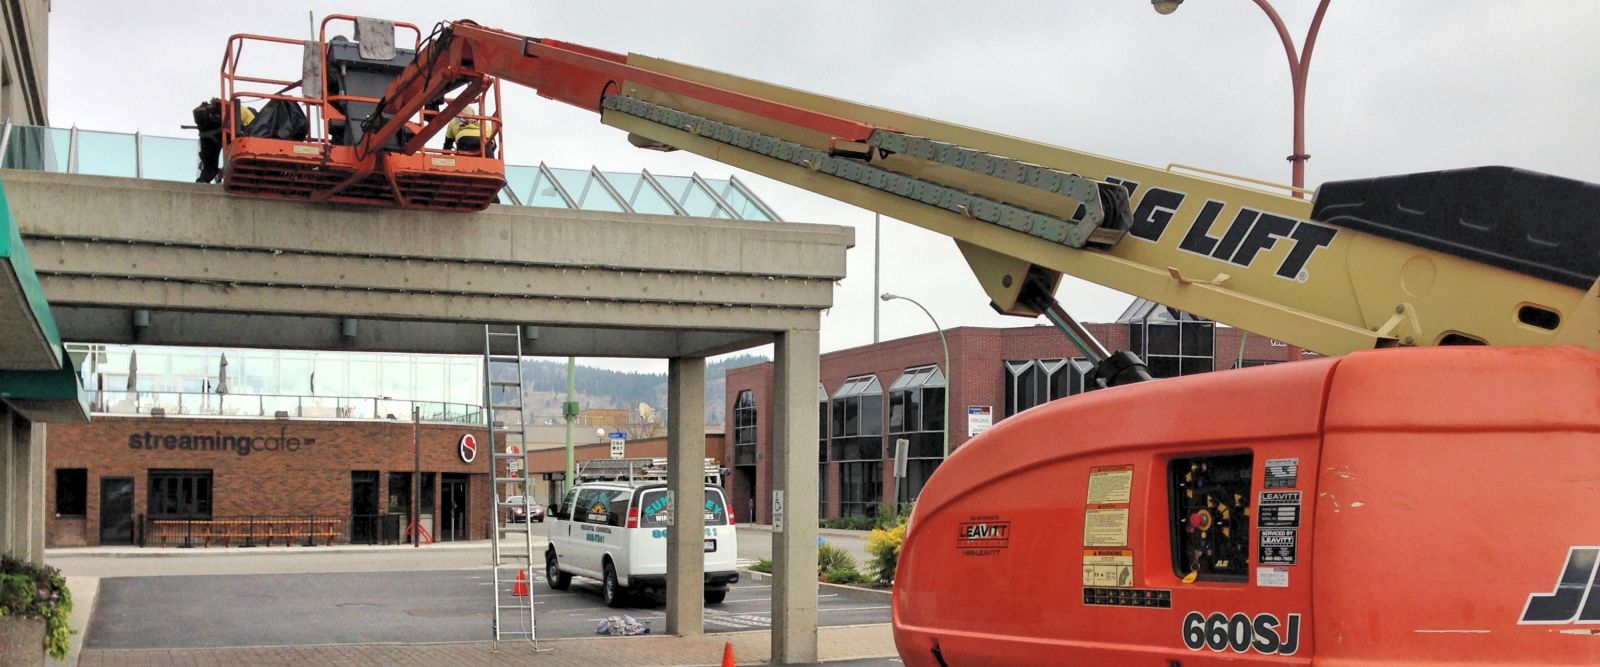 Bank window cleaning boom lift Kelowna